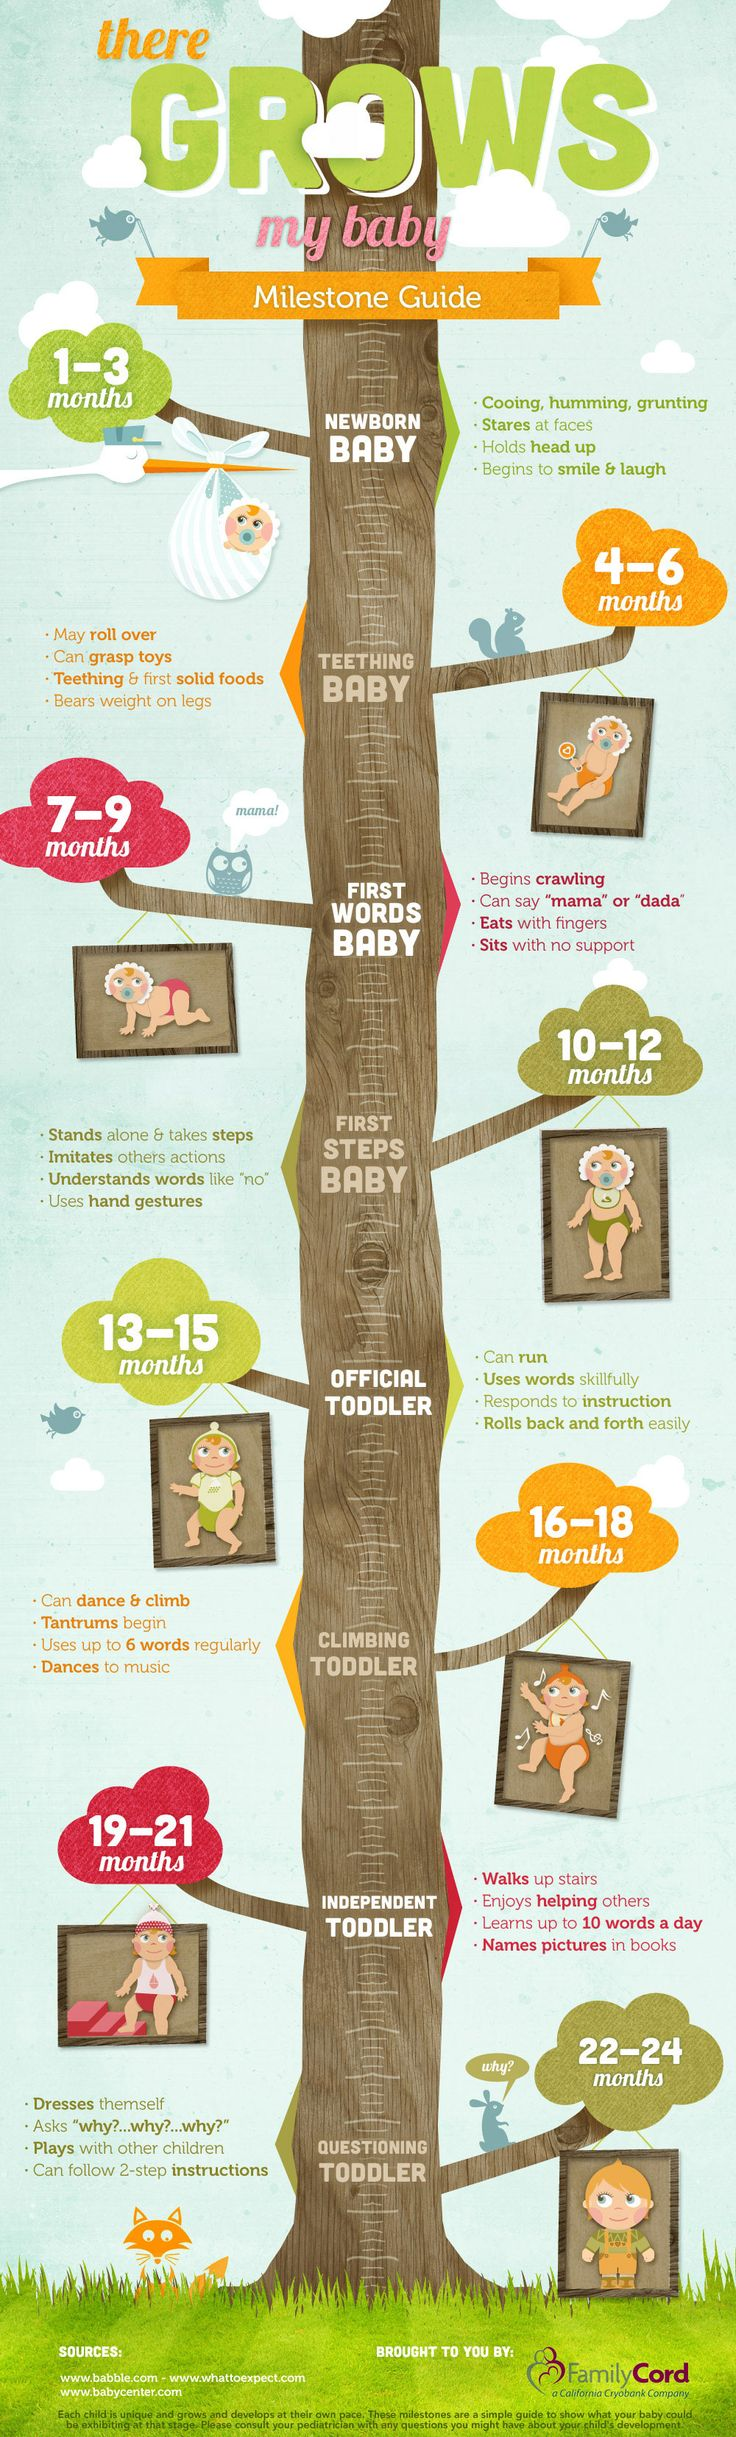 There Grows My Baby infographic-milestones from newborn to 24 mos.